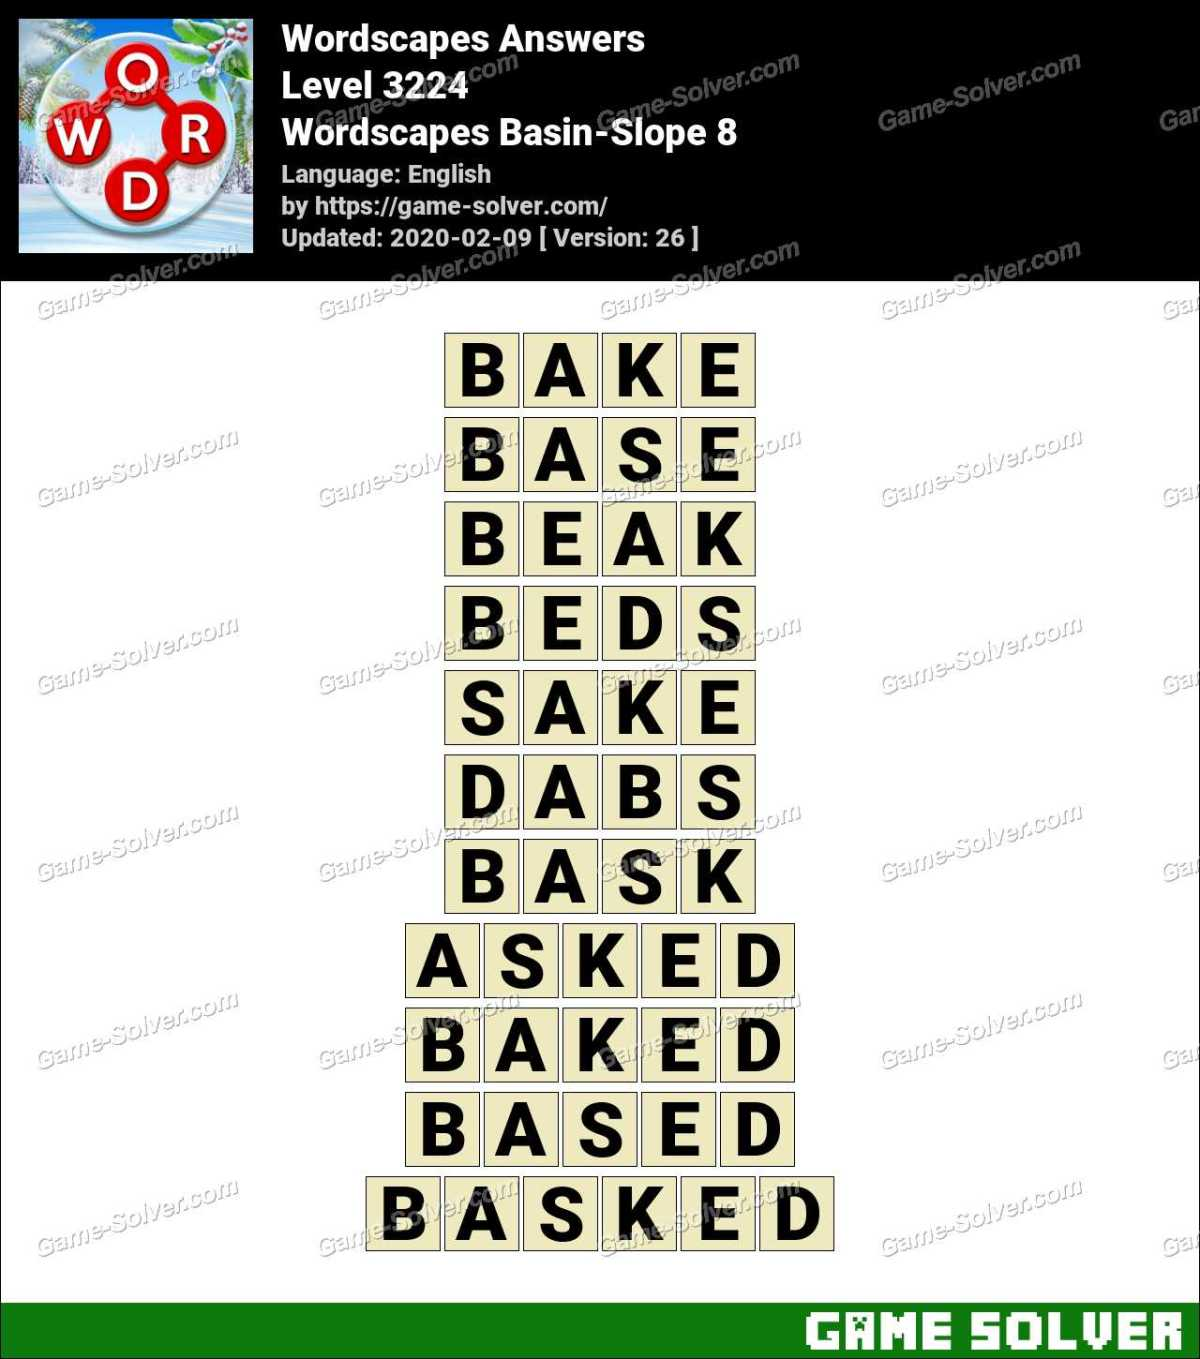 Wordscapes Basin-Slope 8 Answers